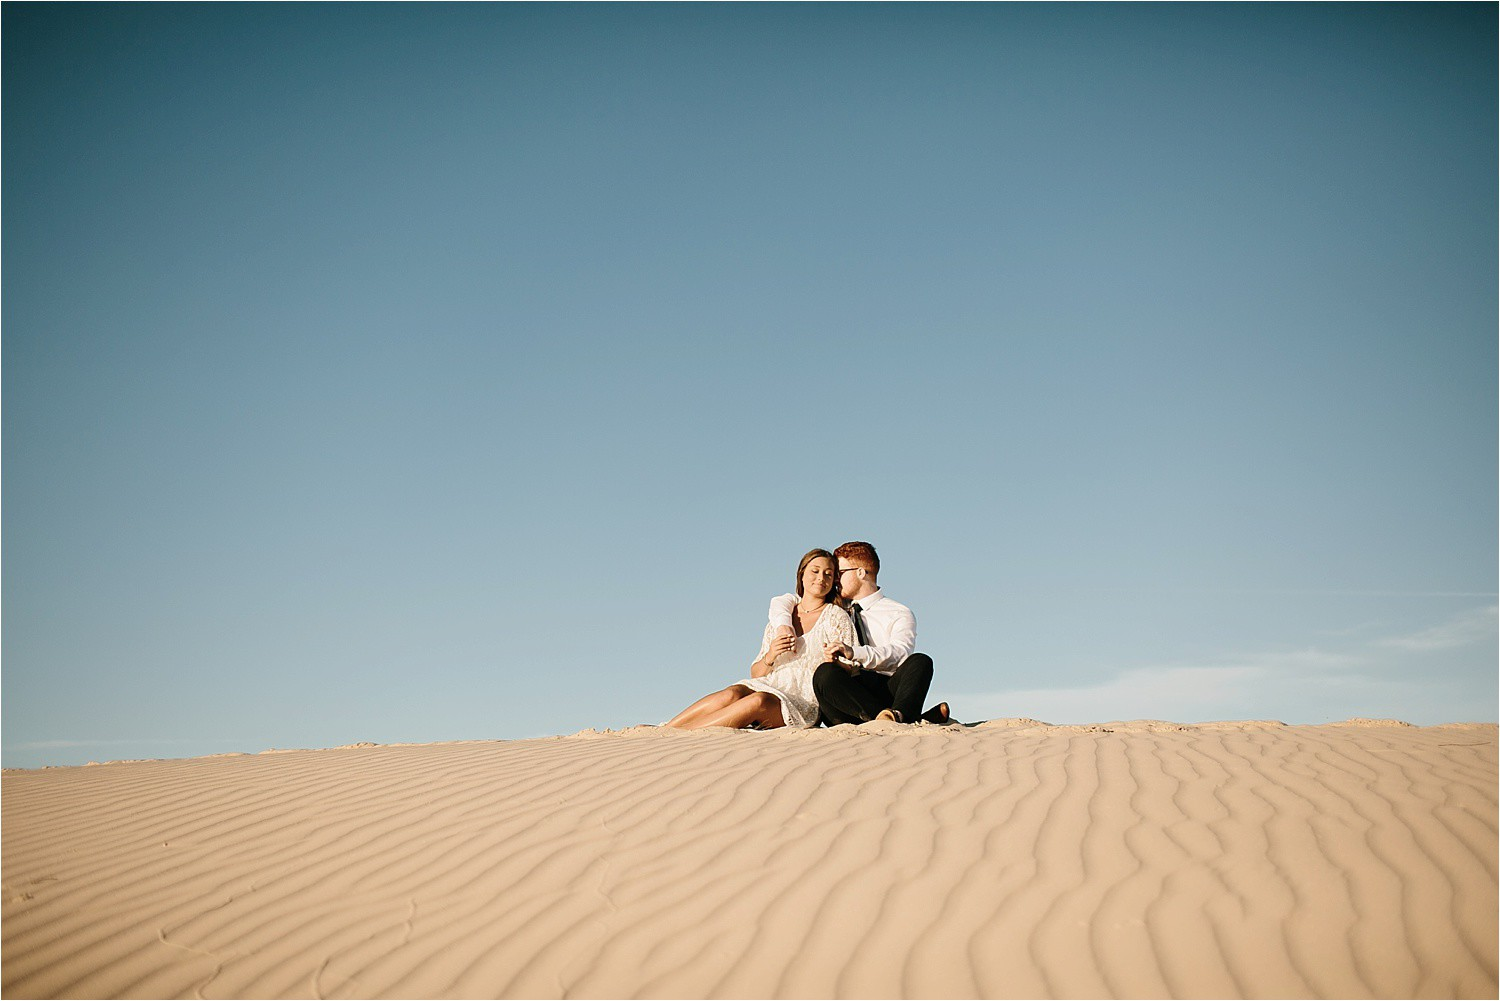 Lauren + Jacob __ a monahans sand dunes engagement session at sunrise by North Texas Wedding Photographer, Rachel Meagan Photography __ 31